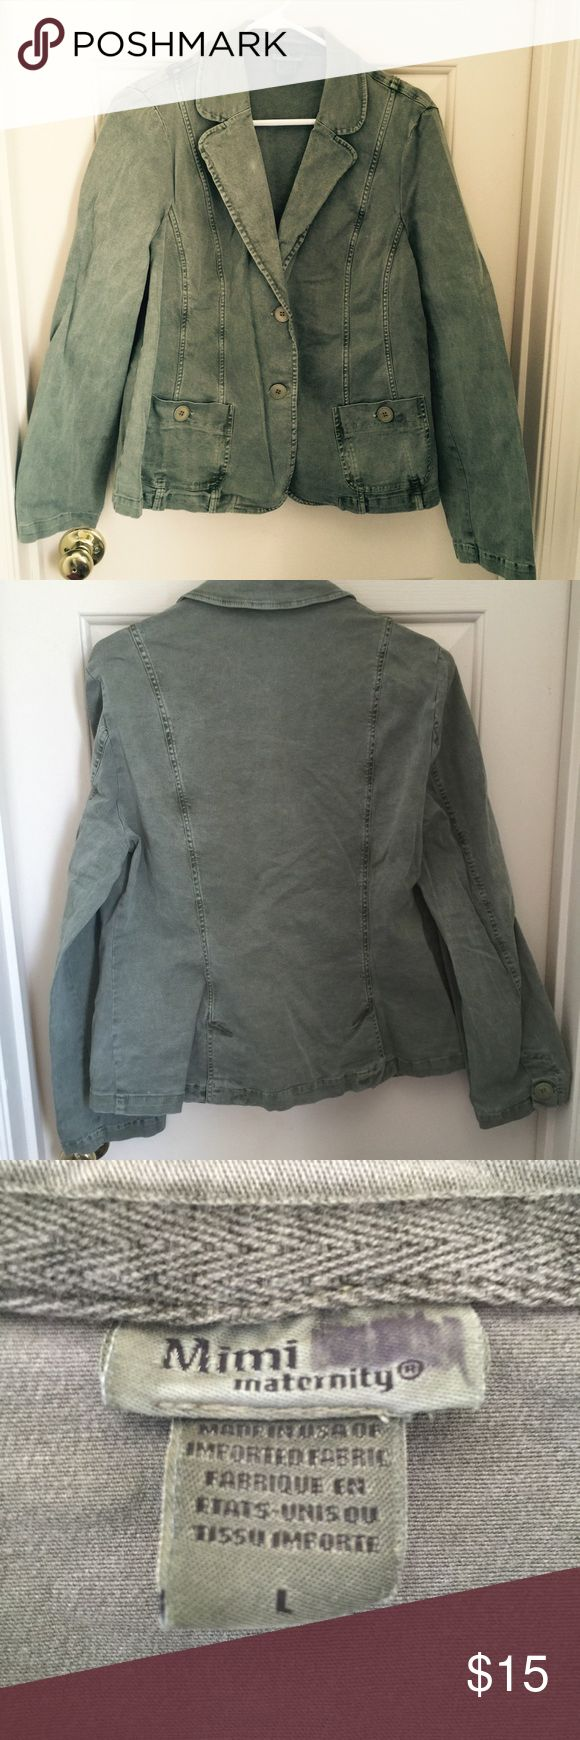 Mimi Maternity Blazer Jacket Large Green Mimi maternity jacket or blazer in a distressed green color. Button details. Good condition. Small stain on arm. I didn't try to remove it just found when taking photos. Hardly noticeable. See picture of arm. Mark on label. Mimi Materntity Jackets & Coats Blazers